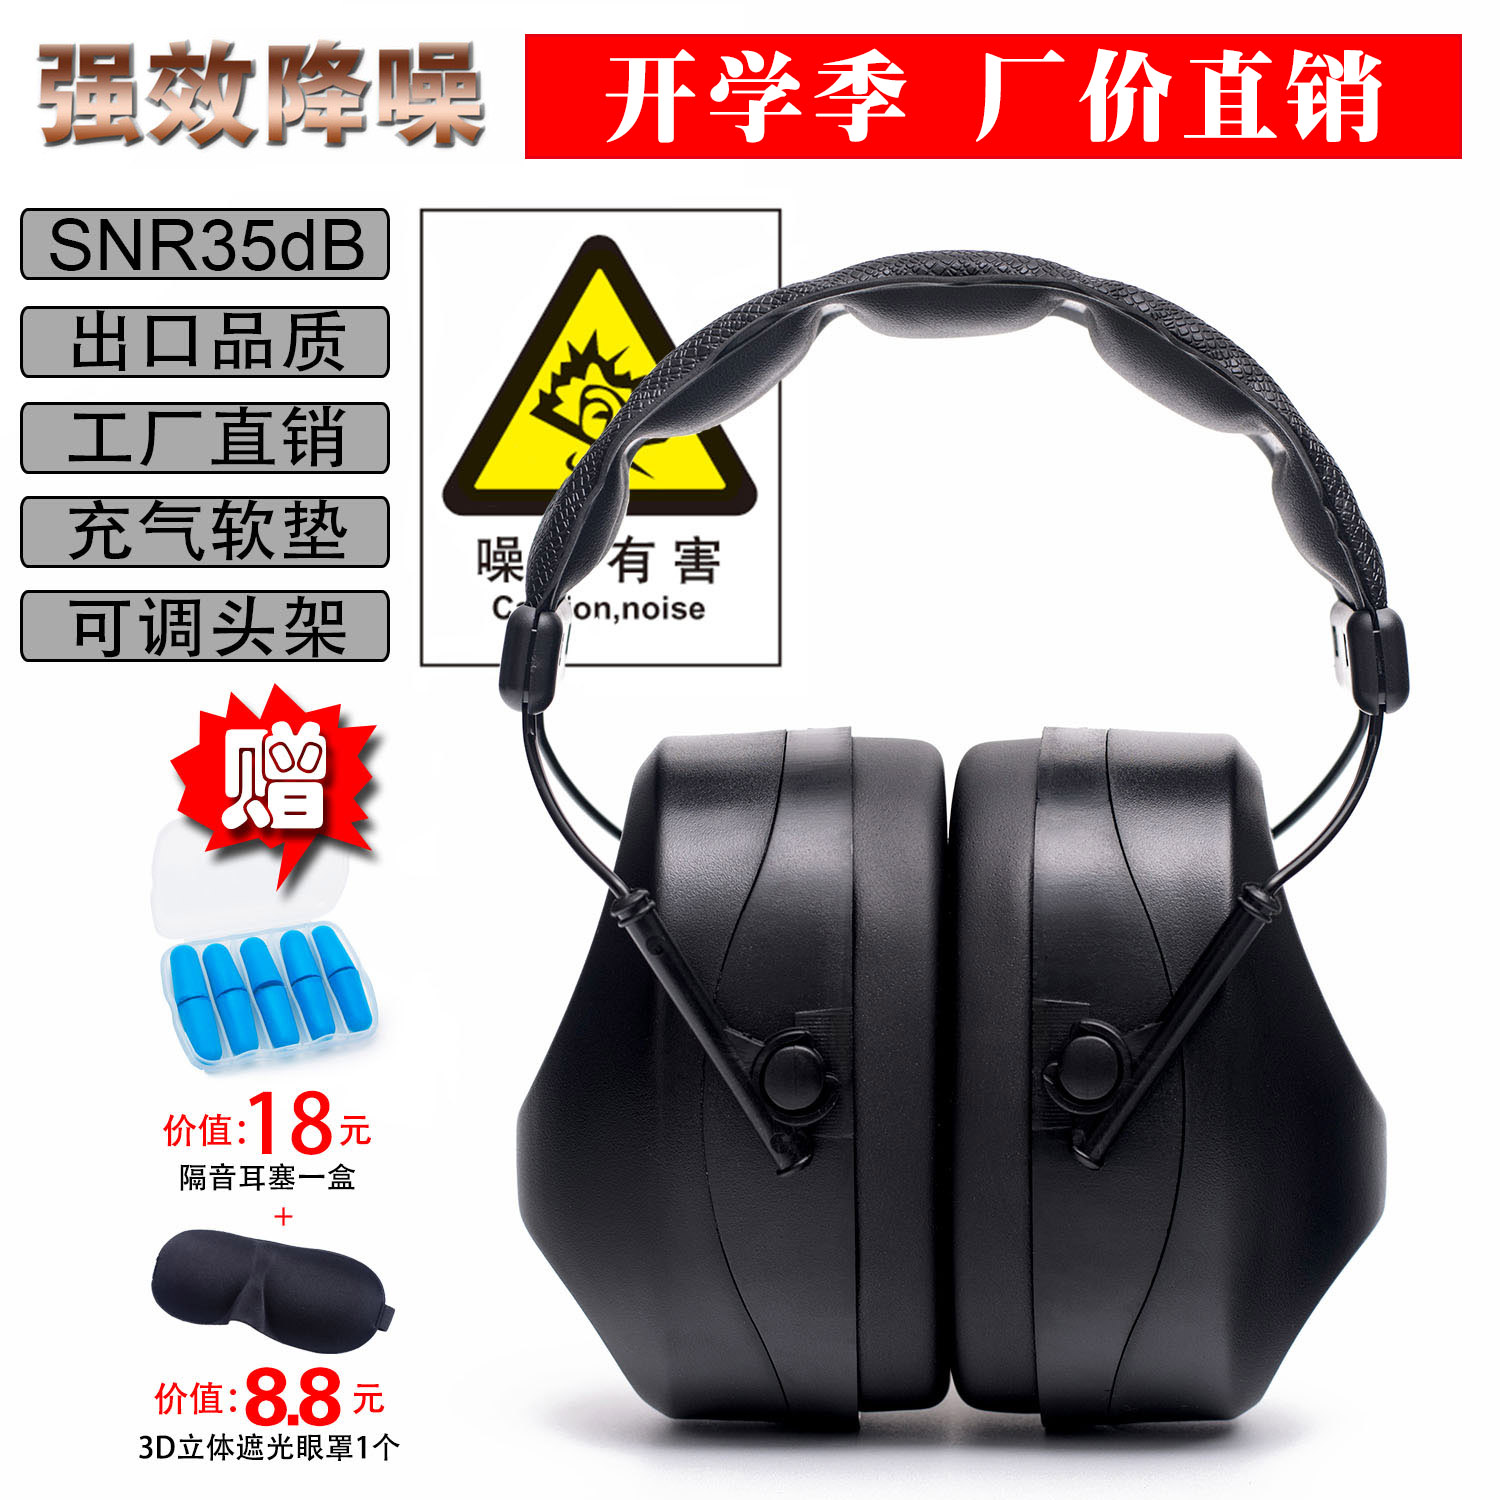 Back To Search Resultssecurity & Protection Anti-noise Earmuffs Noise Reduction Learning Sleep Factory Labor Insurance Ear Protector Soundproof Sound Insulation Ear Muffs Workplace Safety Supplies